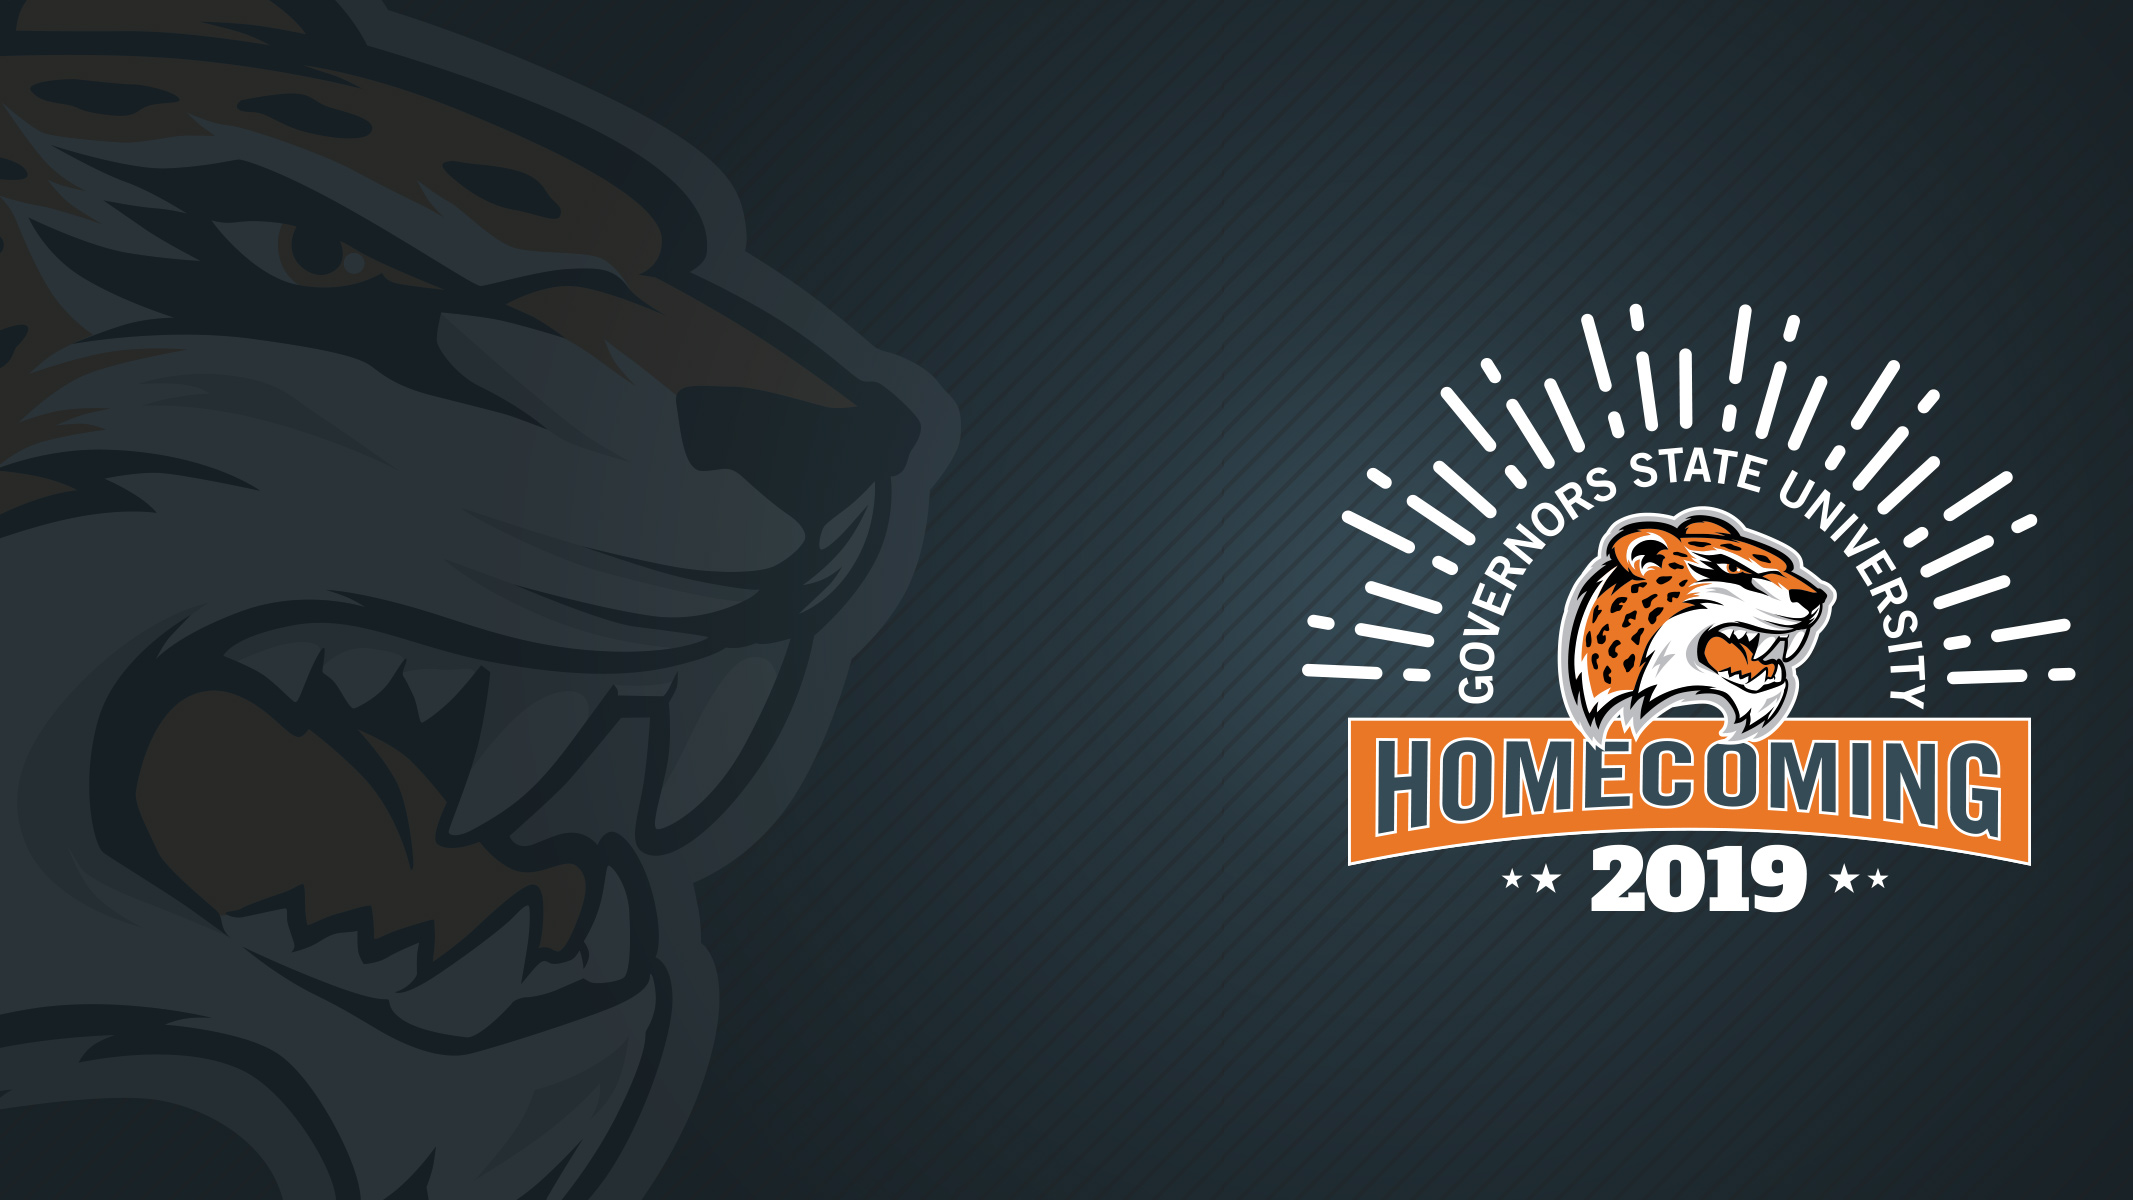 Homecoming 2019 Activities at Governors State University